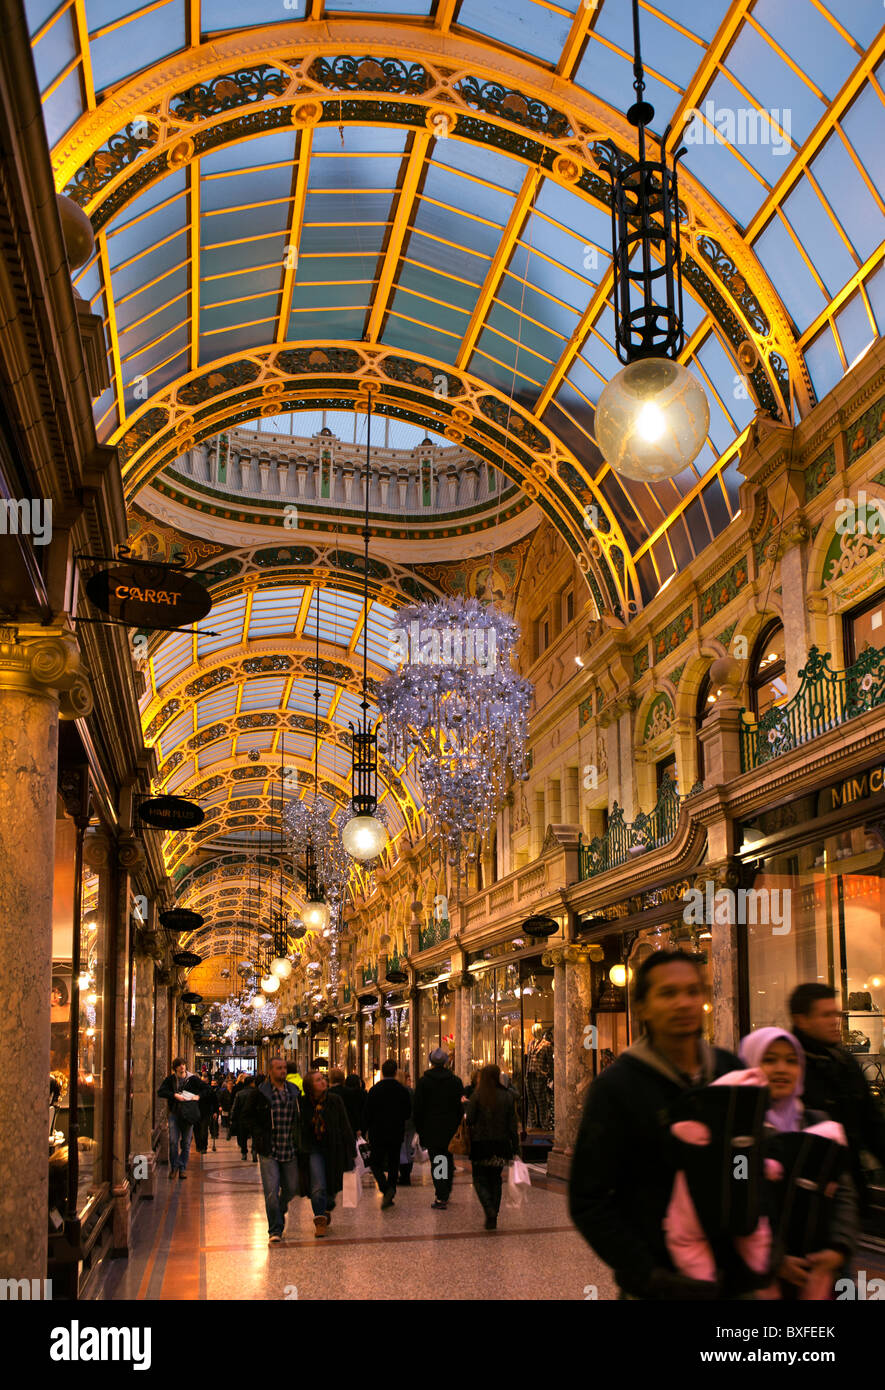 UK, England, Yorkshire, Leeds, Victoria Quarter, County Arcade decorated at Christmas - Stock Image